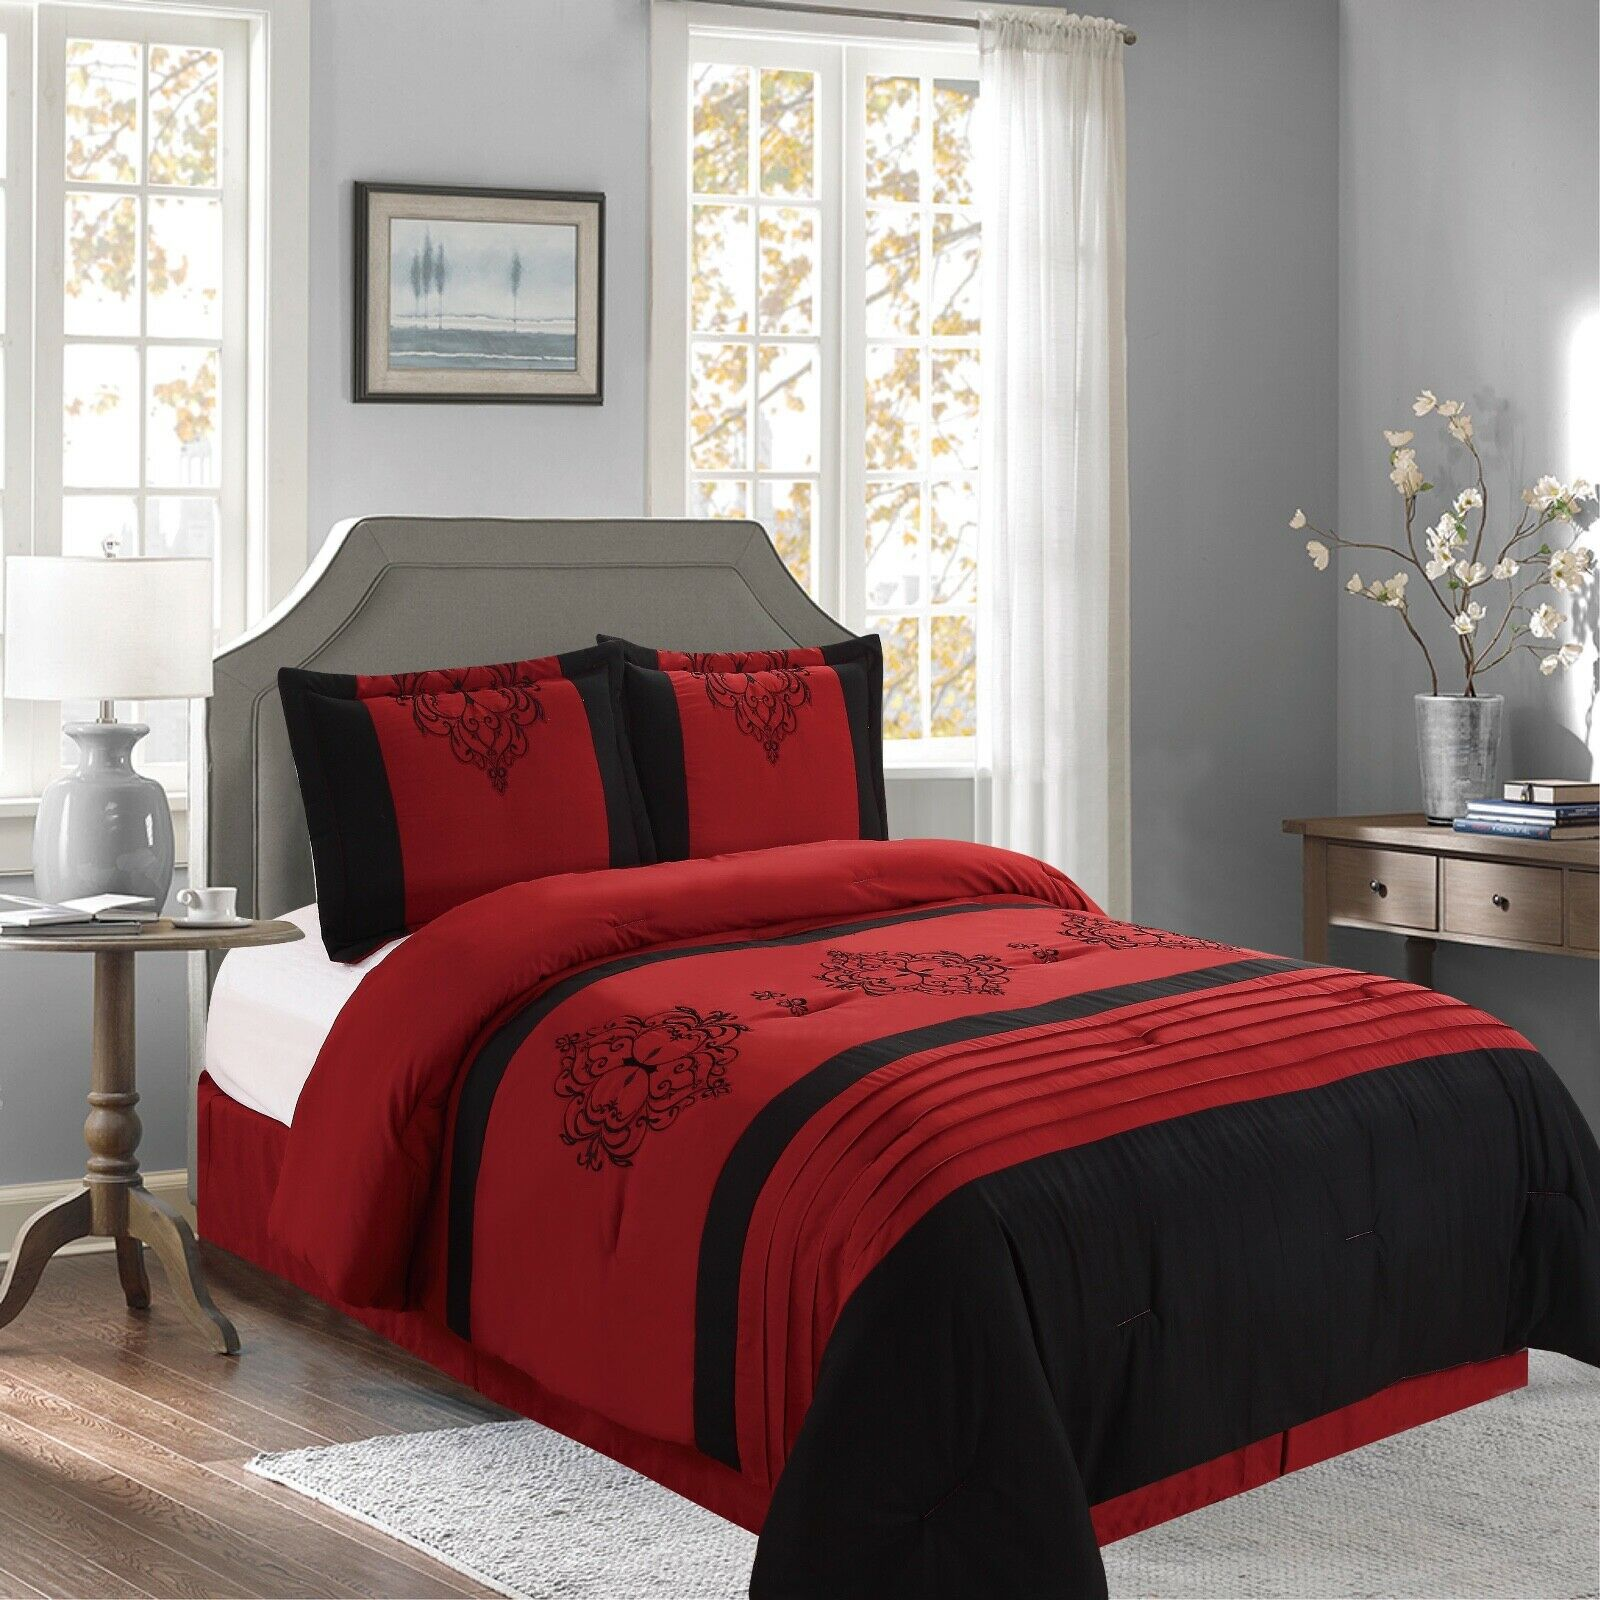 Heba Damask 4-Piece Comforter Set Bedding - Red & Black